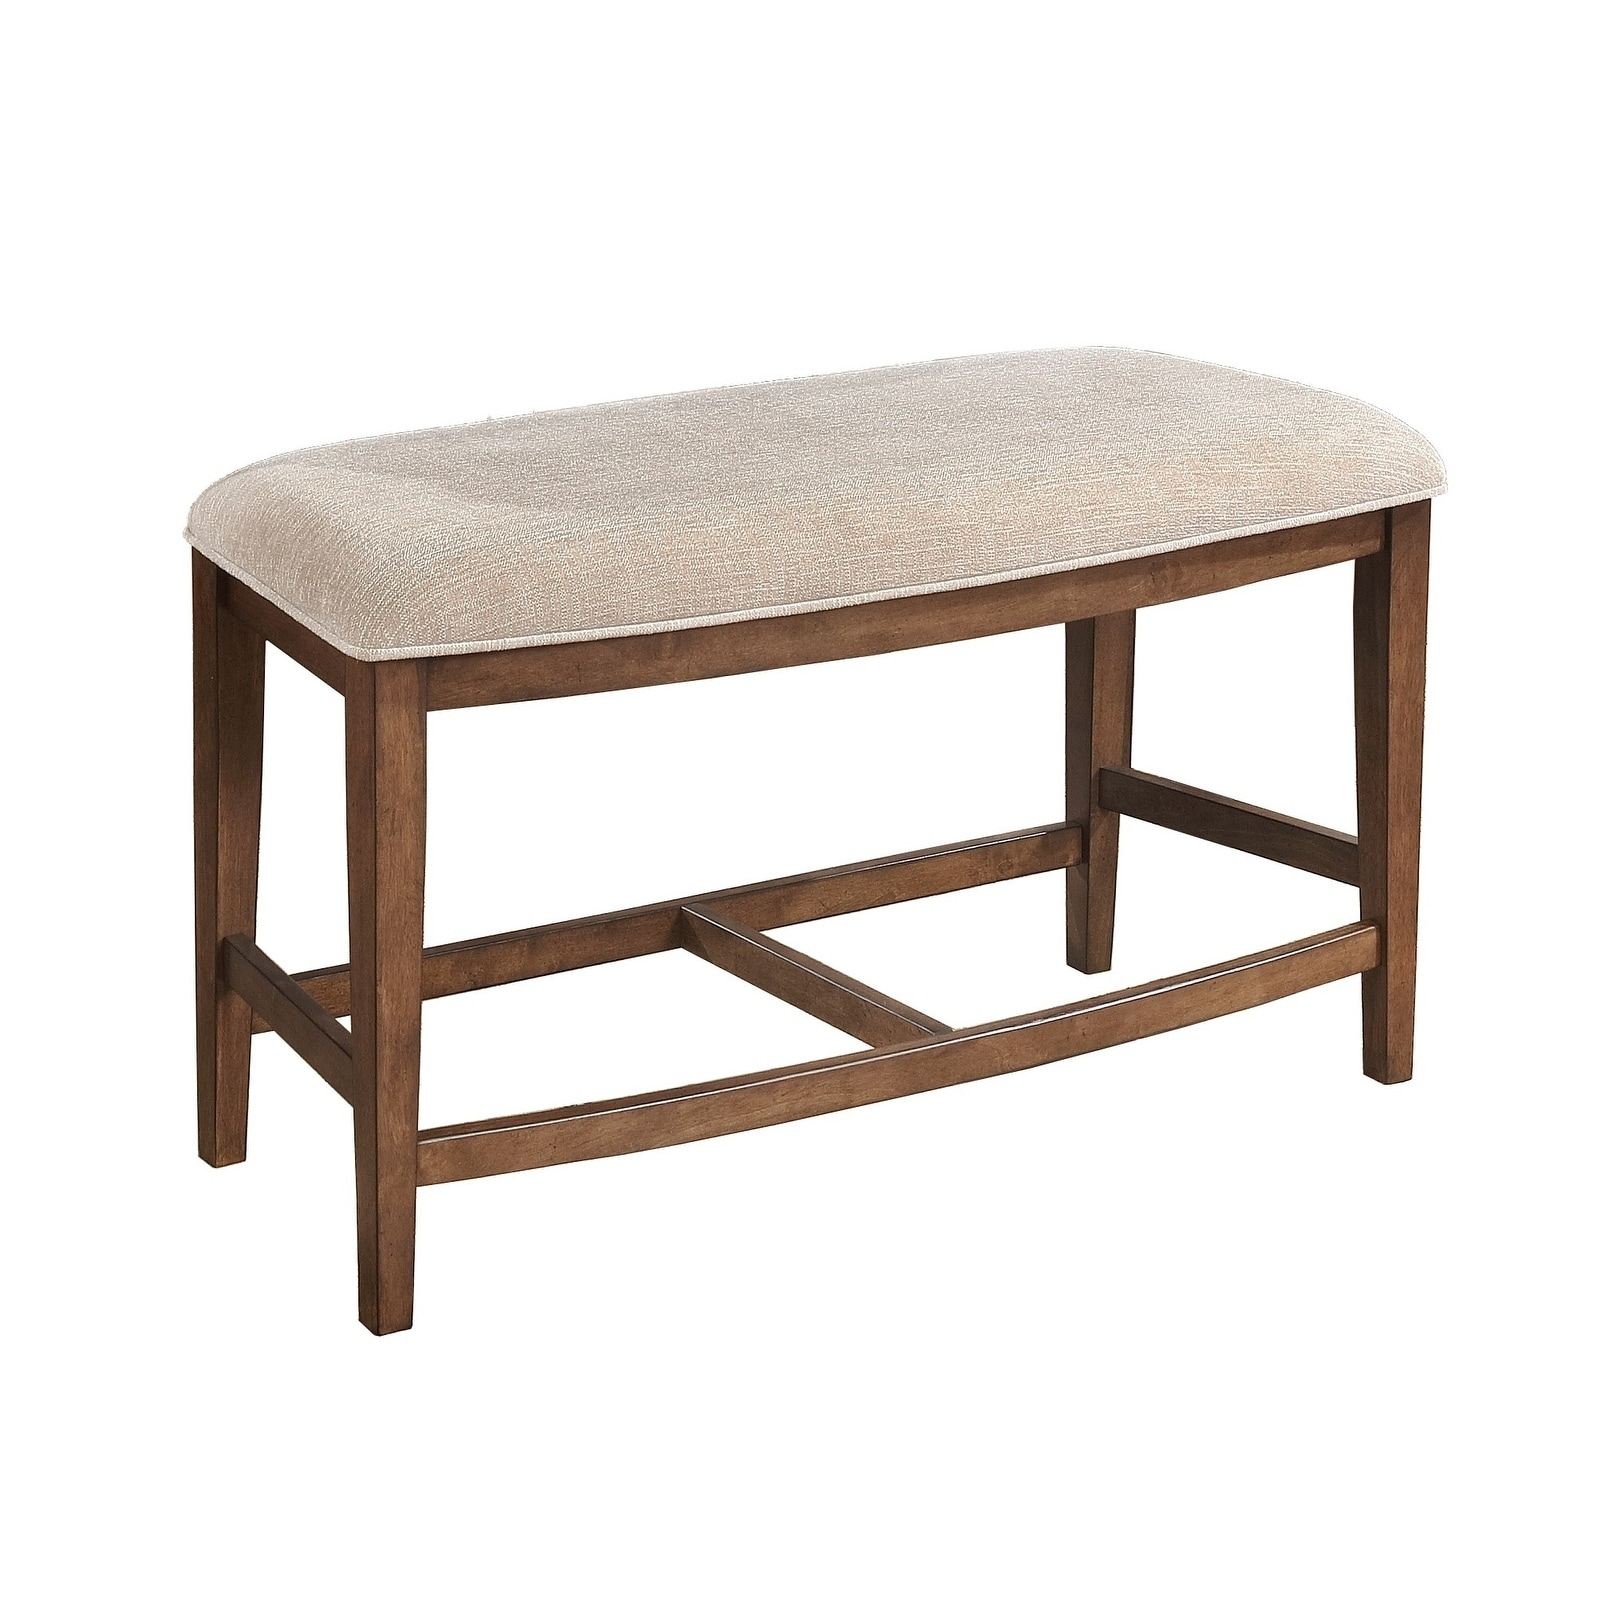 Highest Quality Furniture: Best Quality Furniture Pecan Curved Counter Height Bench